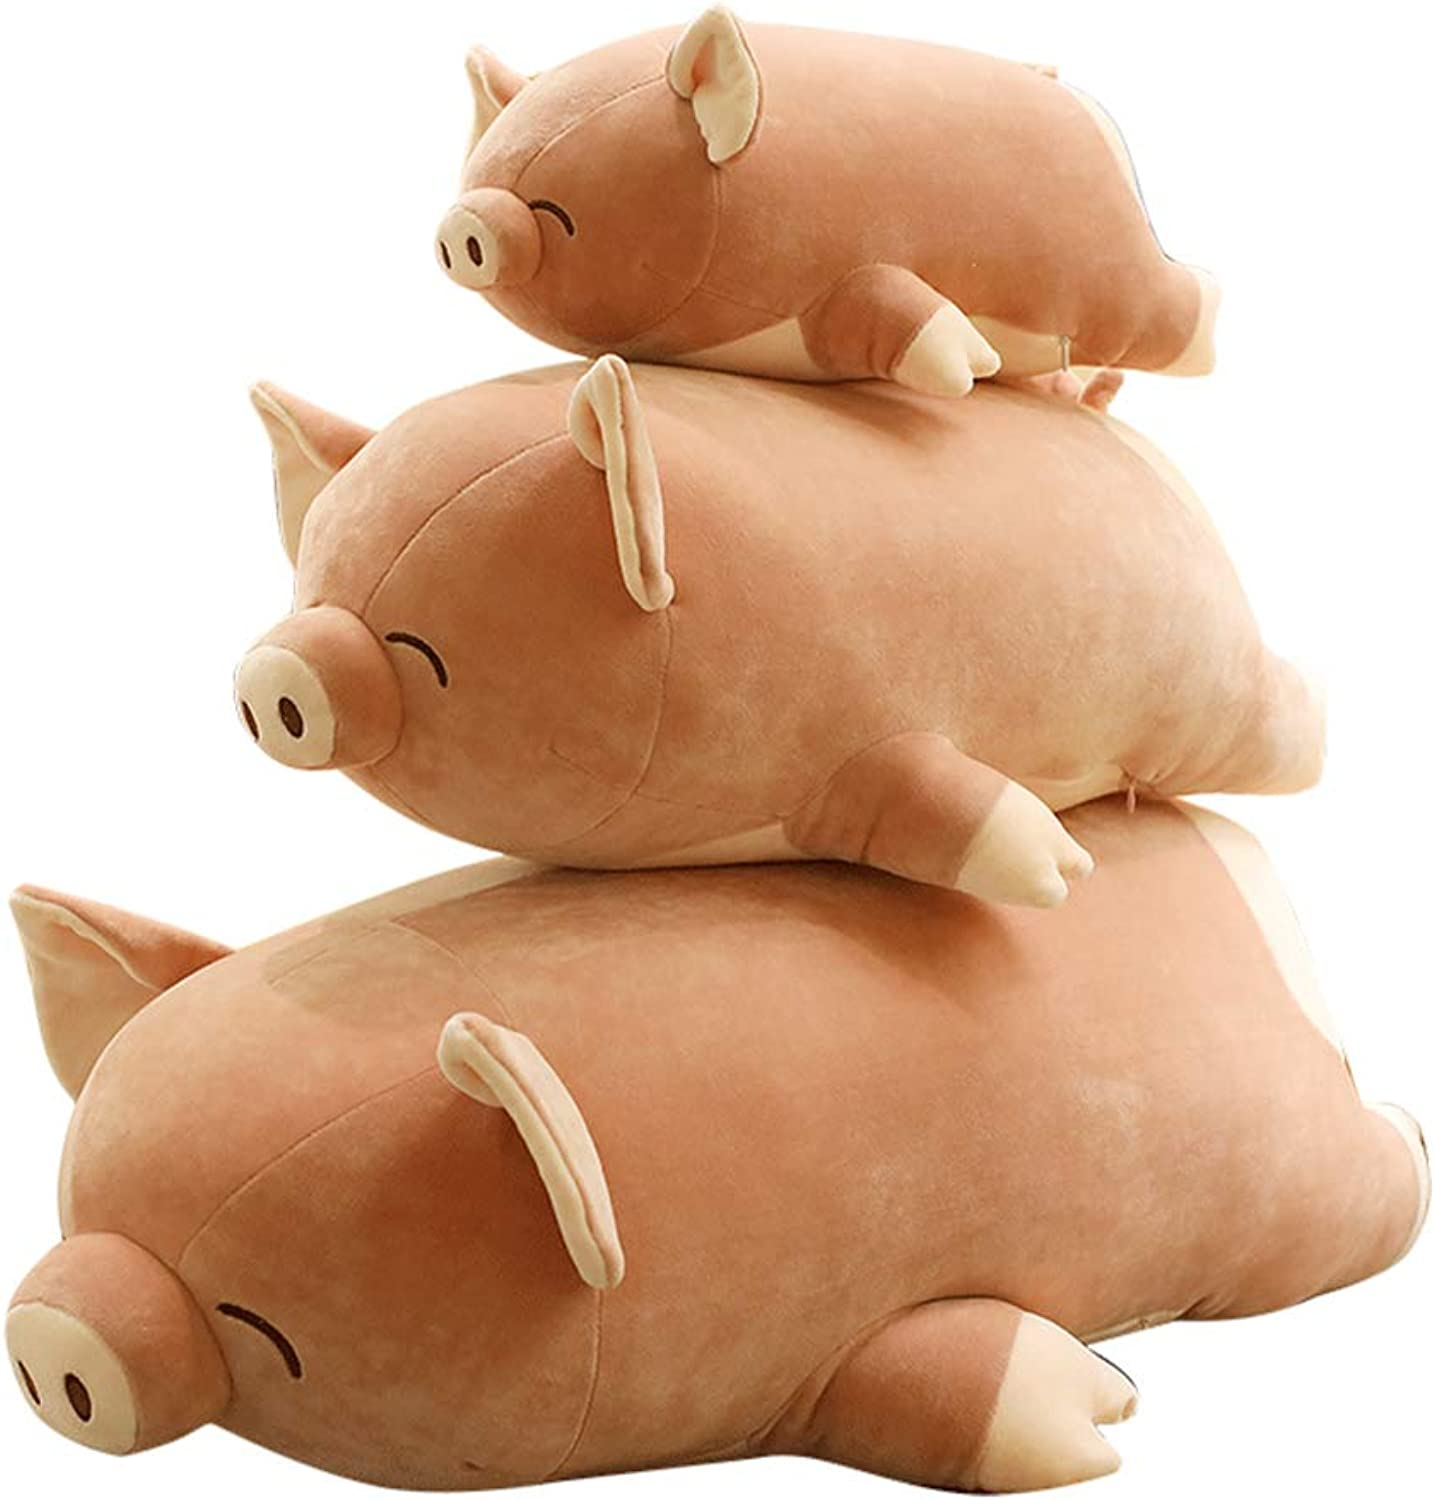 Futurecos Pig Plush Doll Toy Pink Girls Girlfriend Gift 3D Animal Stuffed Piggy with Heart Butt Decorative Throw Pillows Home Accents 80CM